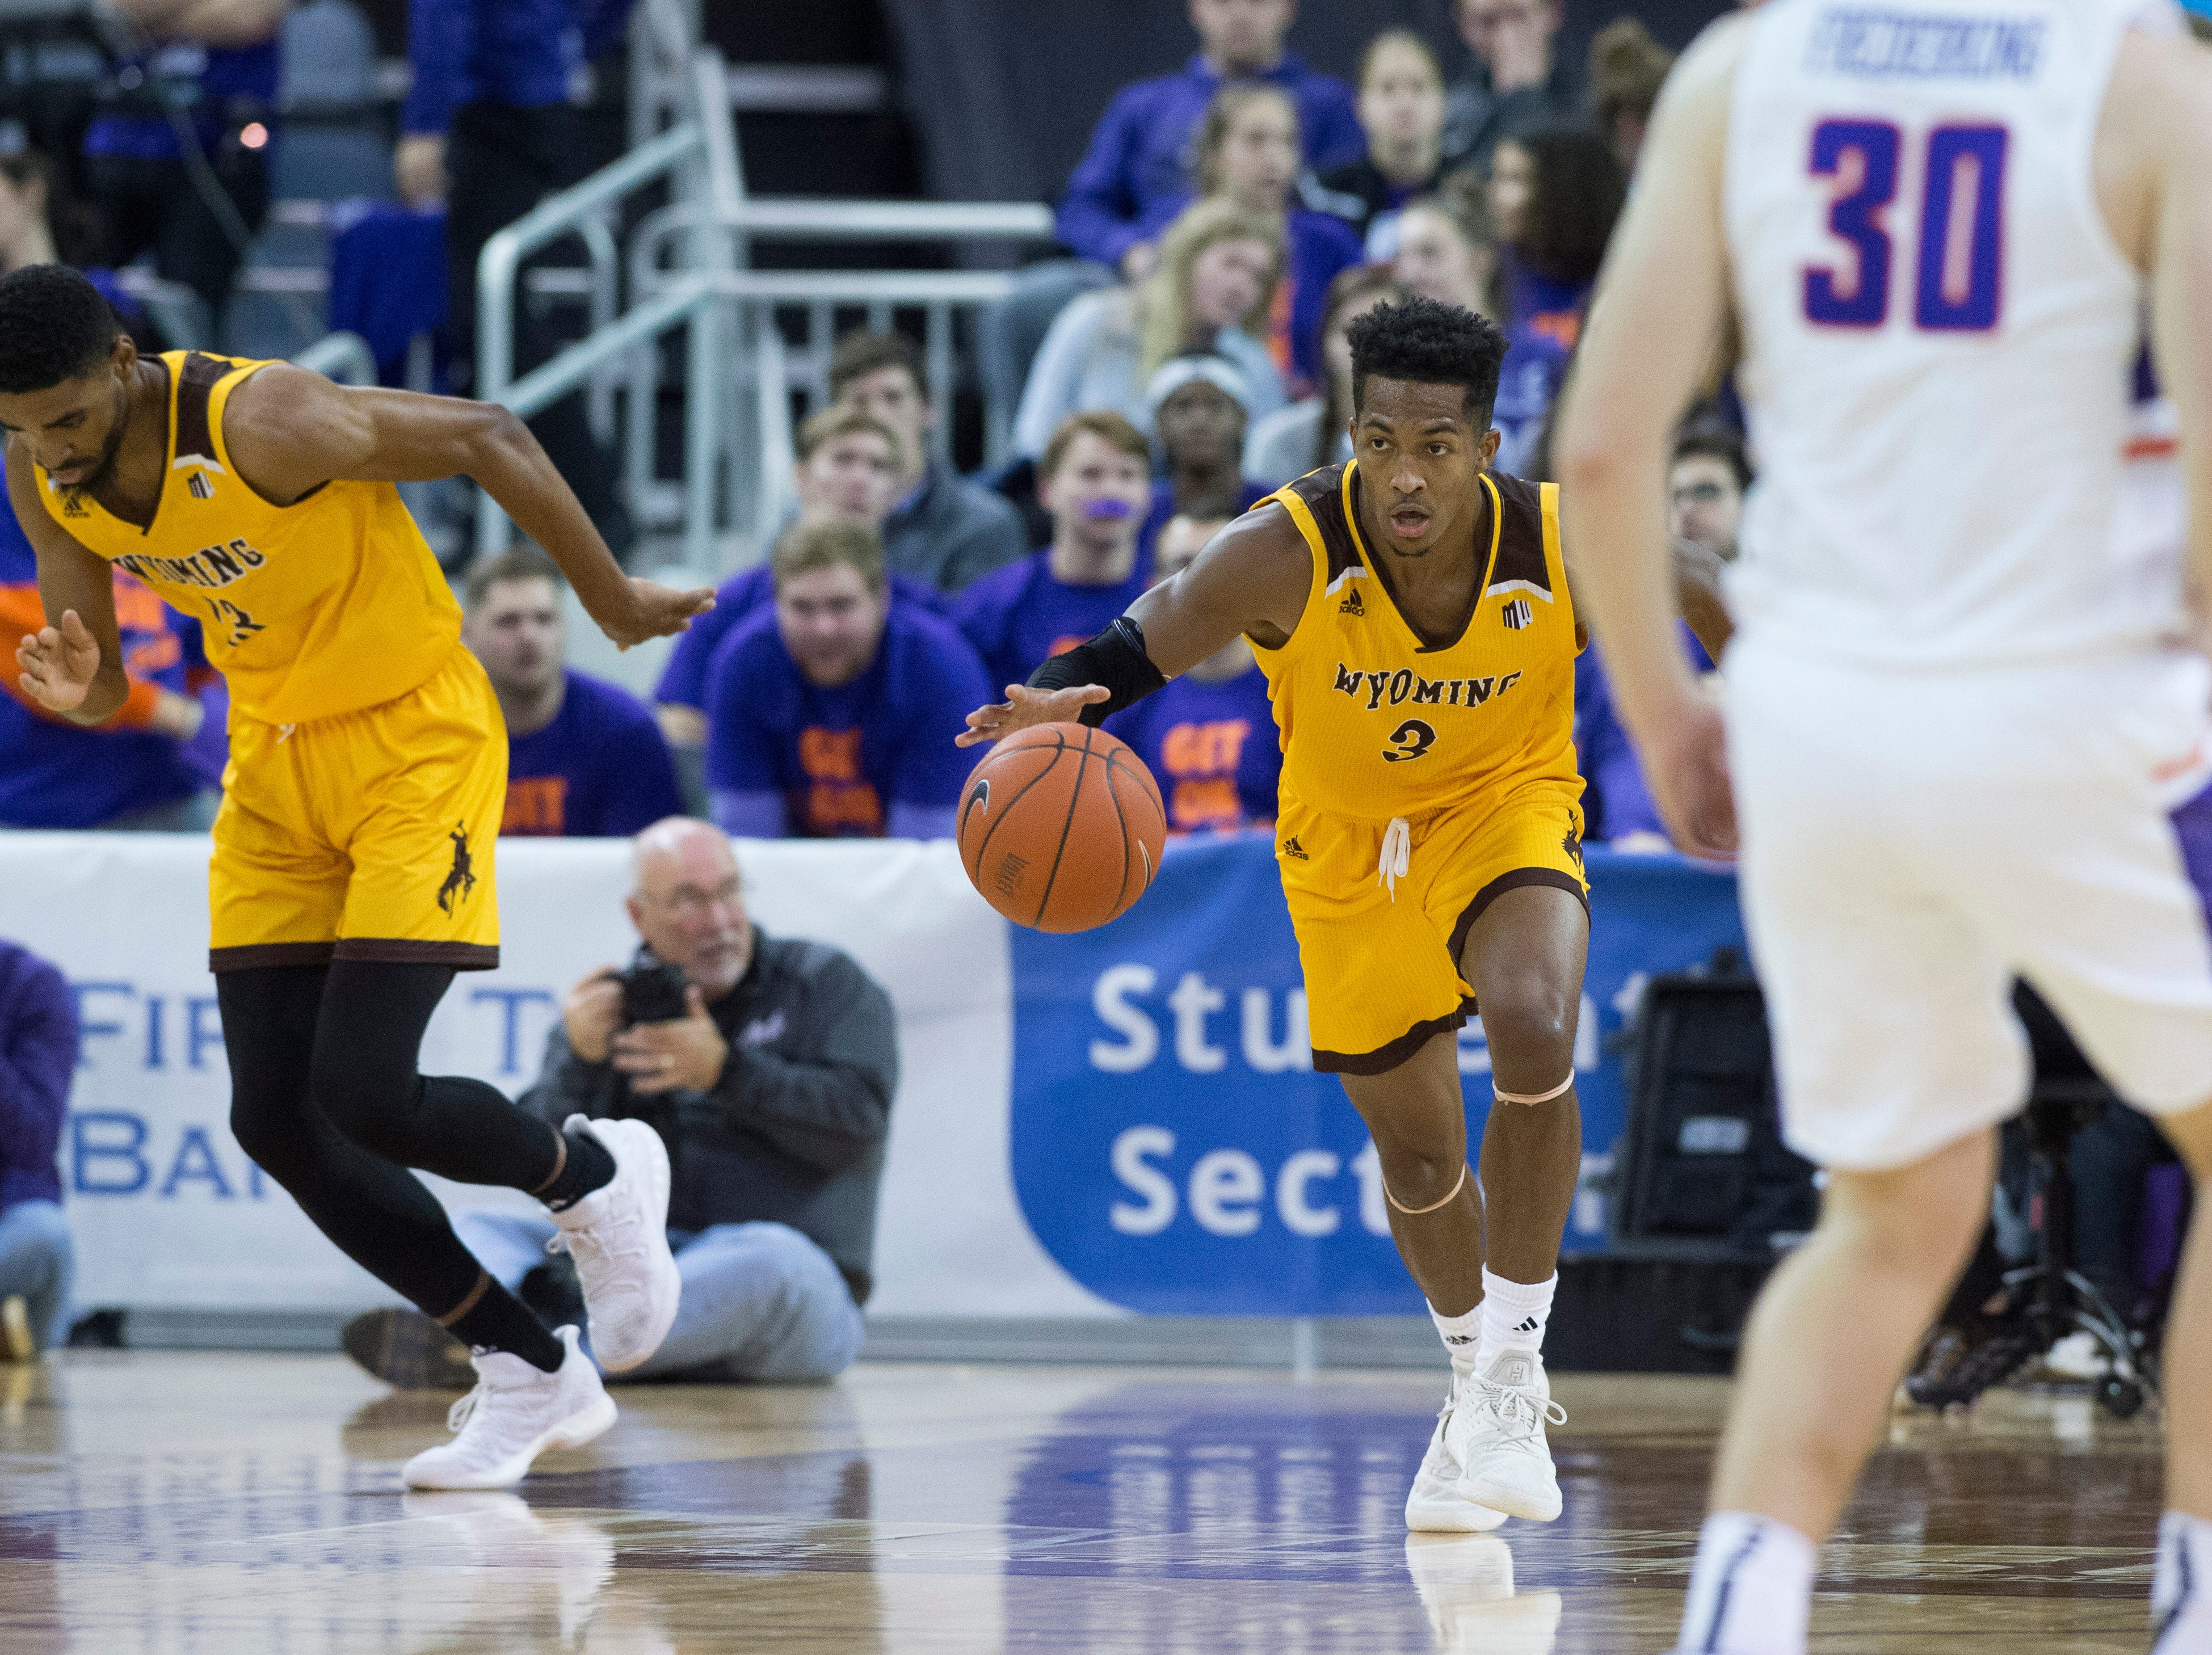 Wyoming's Nyaires Redding (3) dribbles the ball down court during the UE vs Wyoming game at the Ford Center Wednesday, Nov. 28, 2018. UE won 86-76.